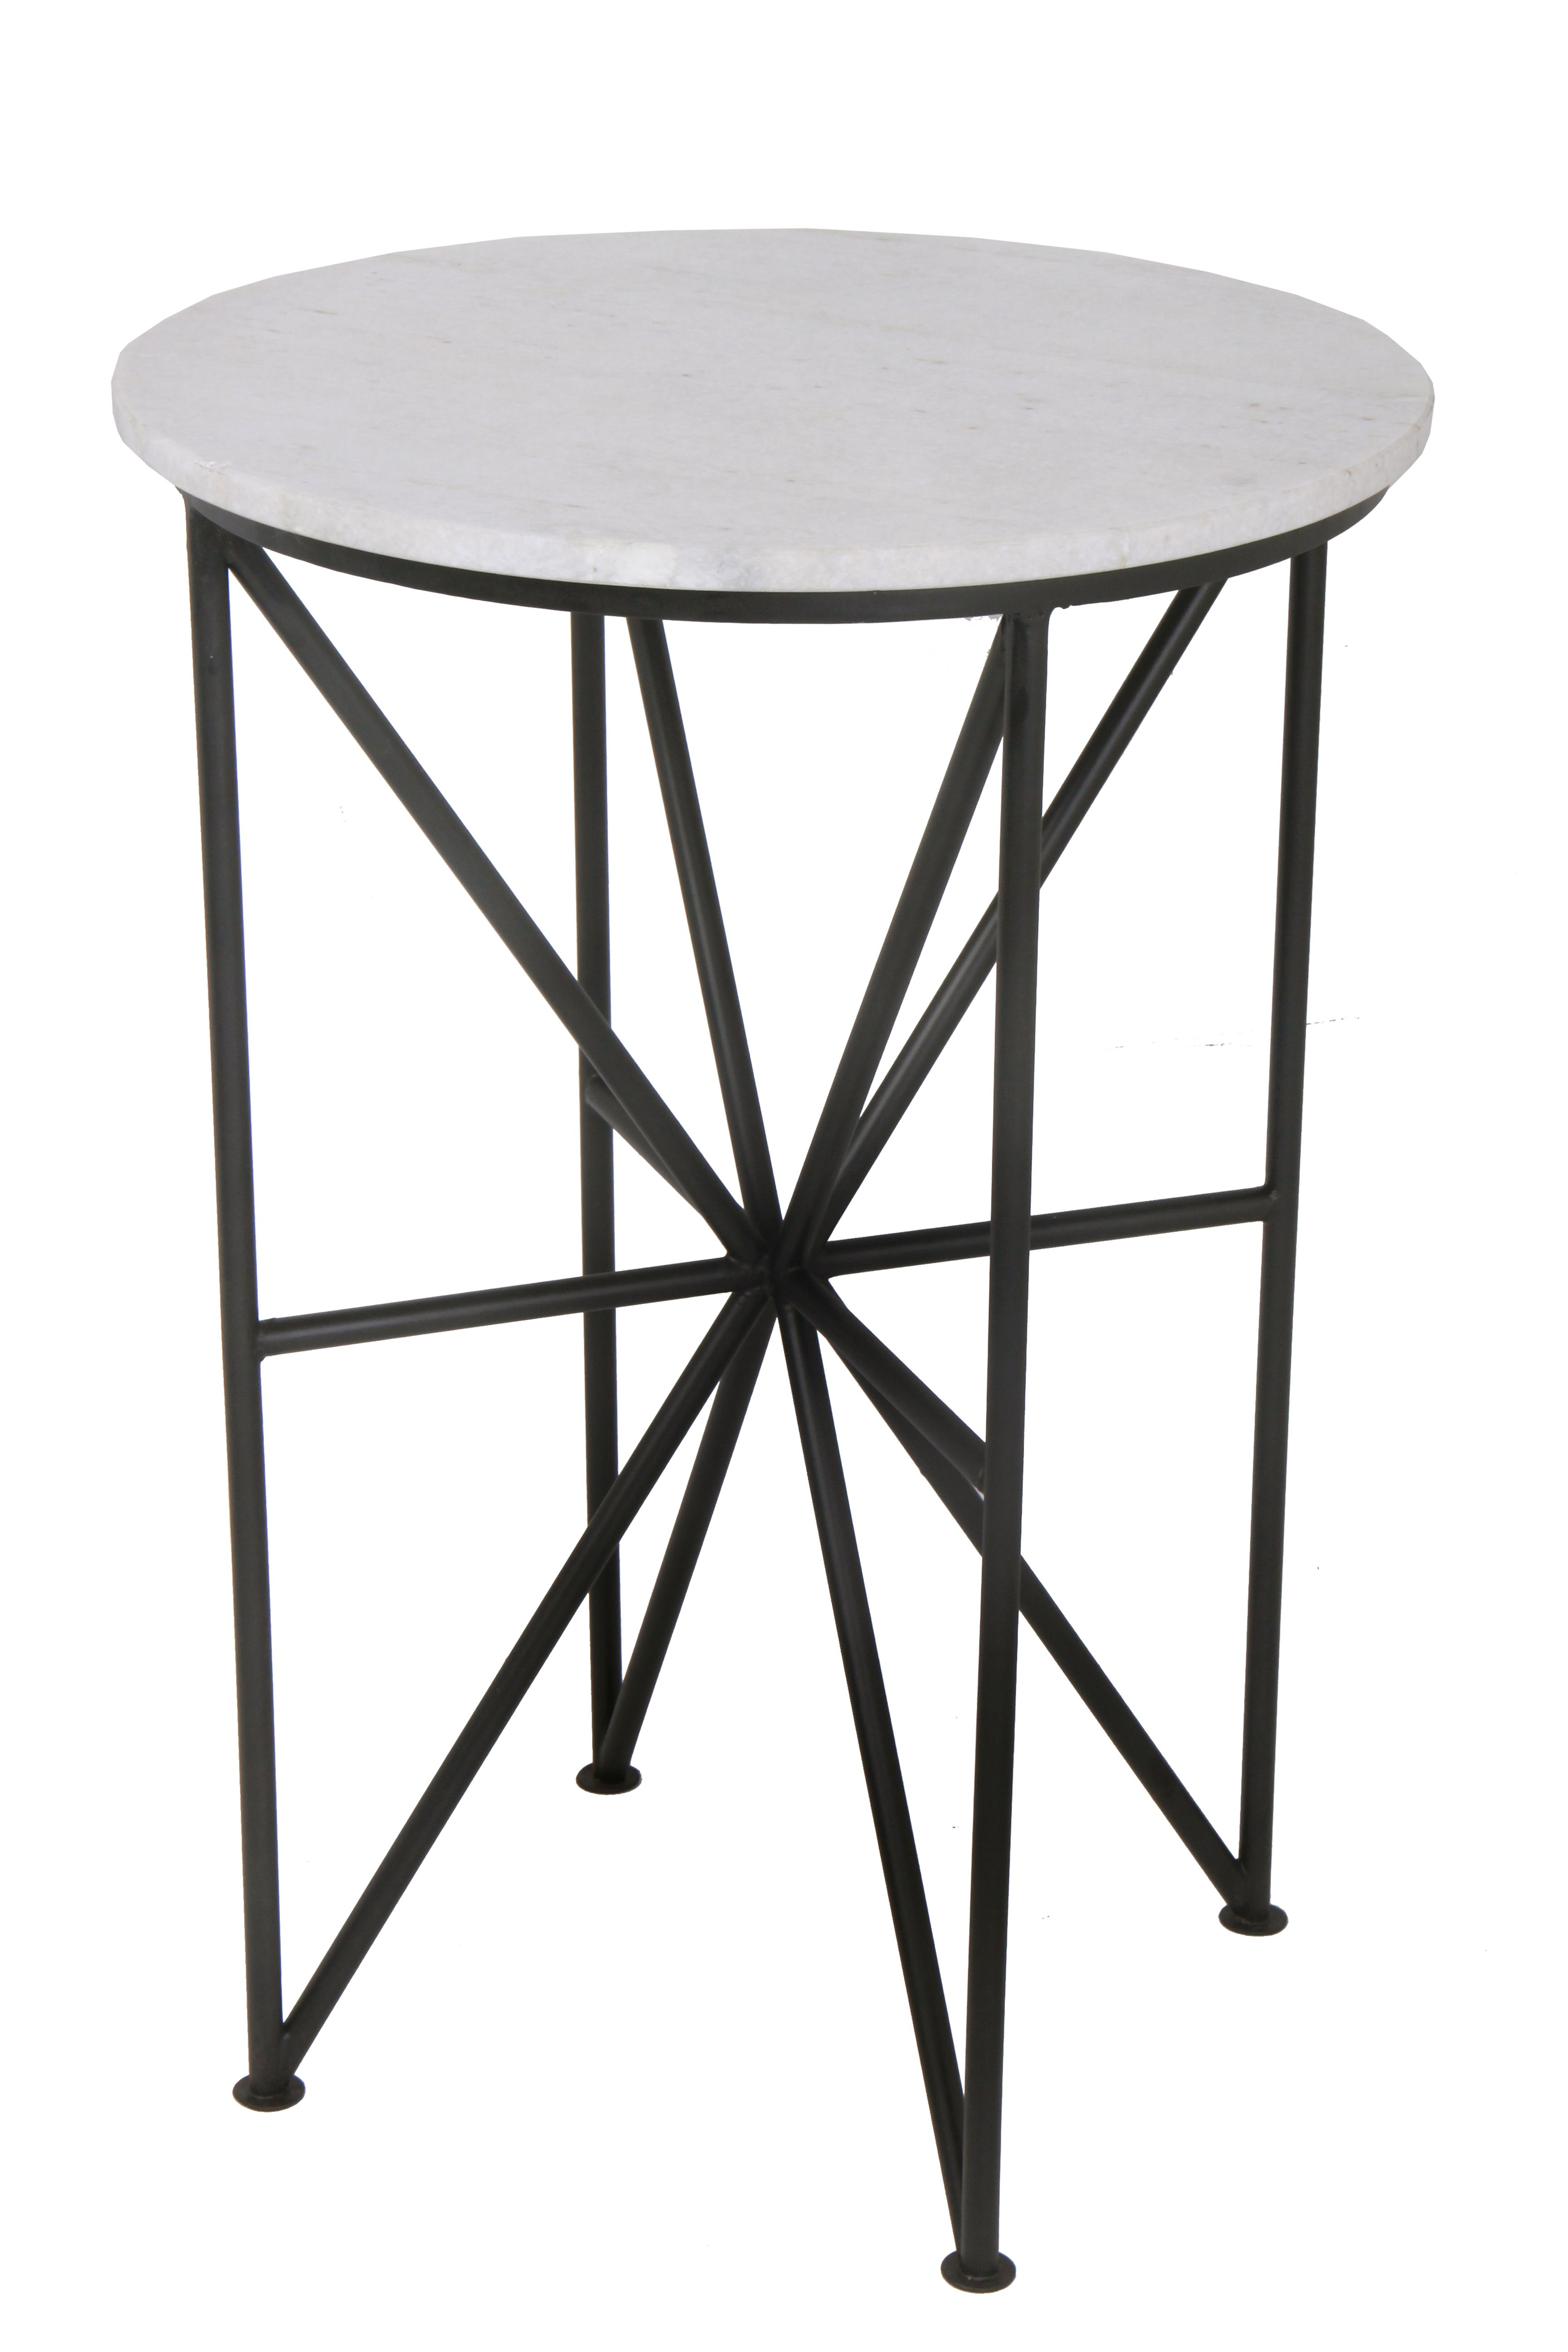 lulu parisa accent table apartment marble white top black super skinny side bamboo coffee outdoor wicker and chairs foldable trestle cardboard cream colored nightstand cocktail